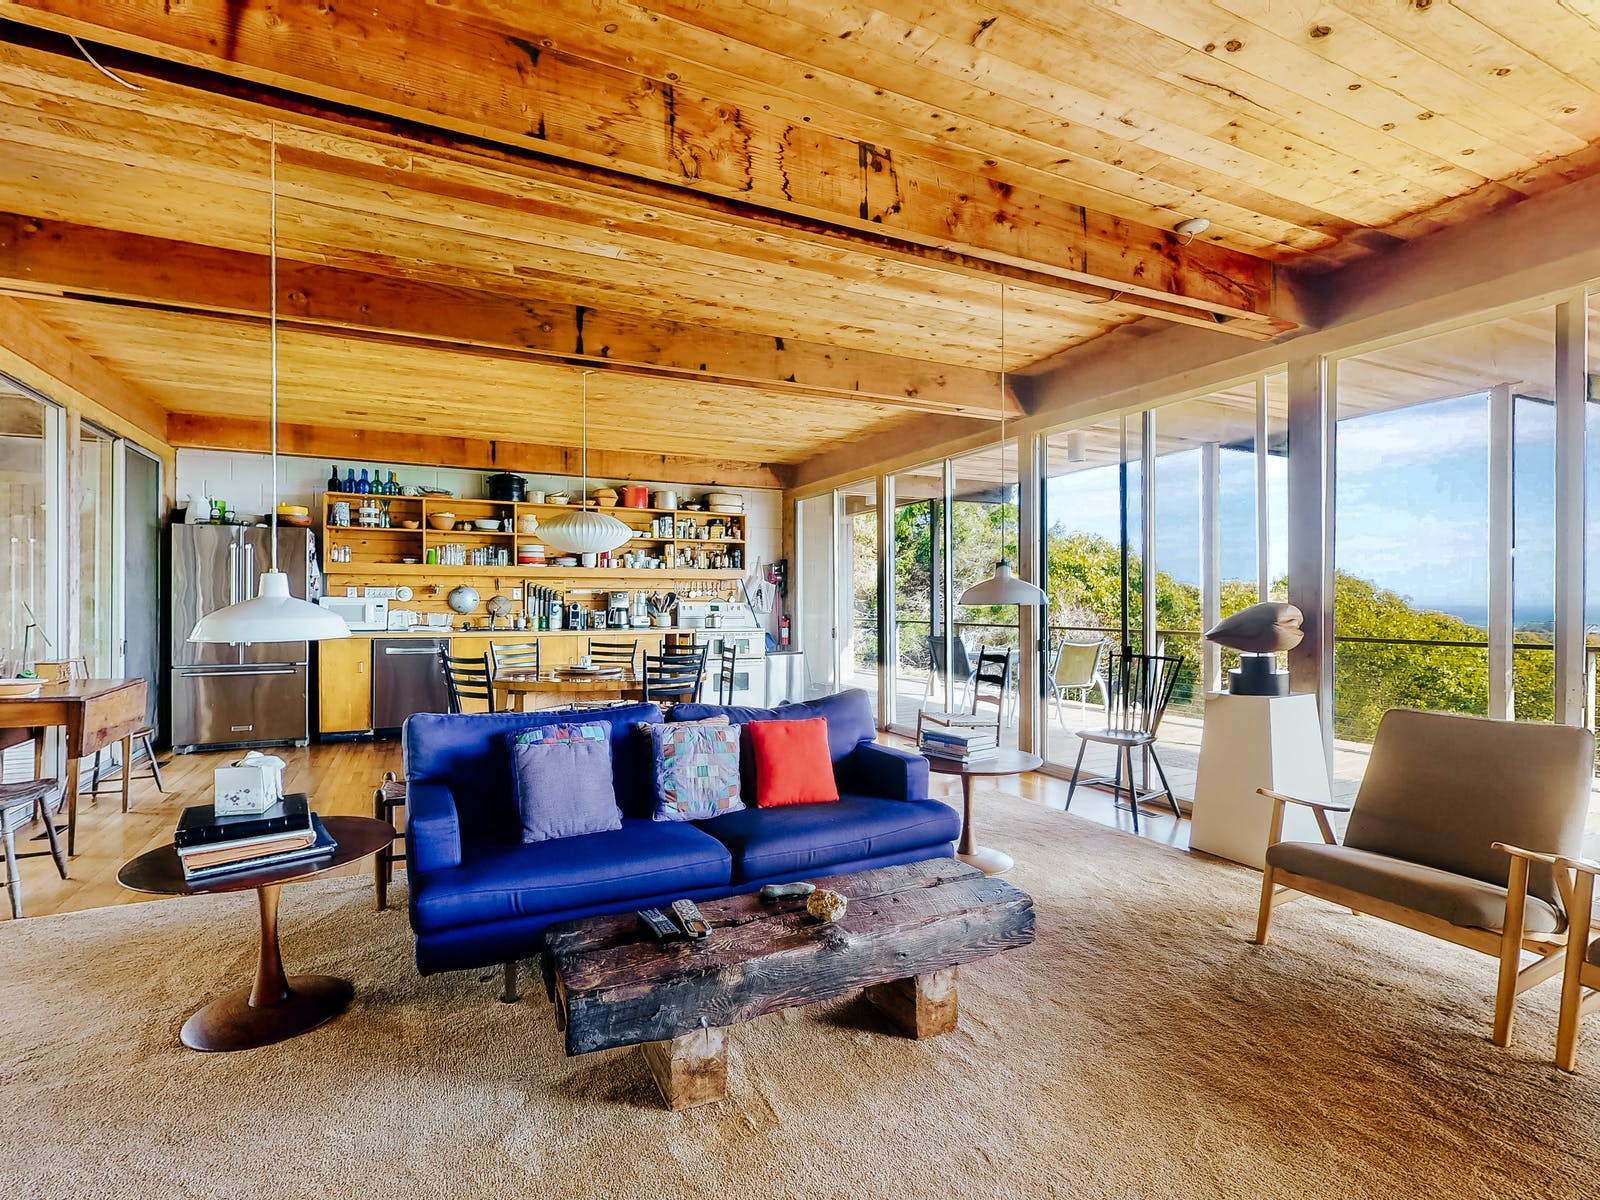 Exposed wood beams and open layout with a blue coach and beautiful views in Chilmark, MA.